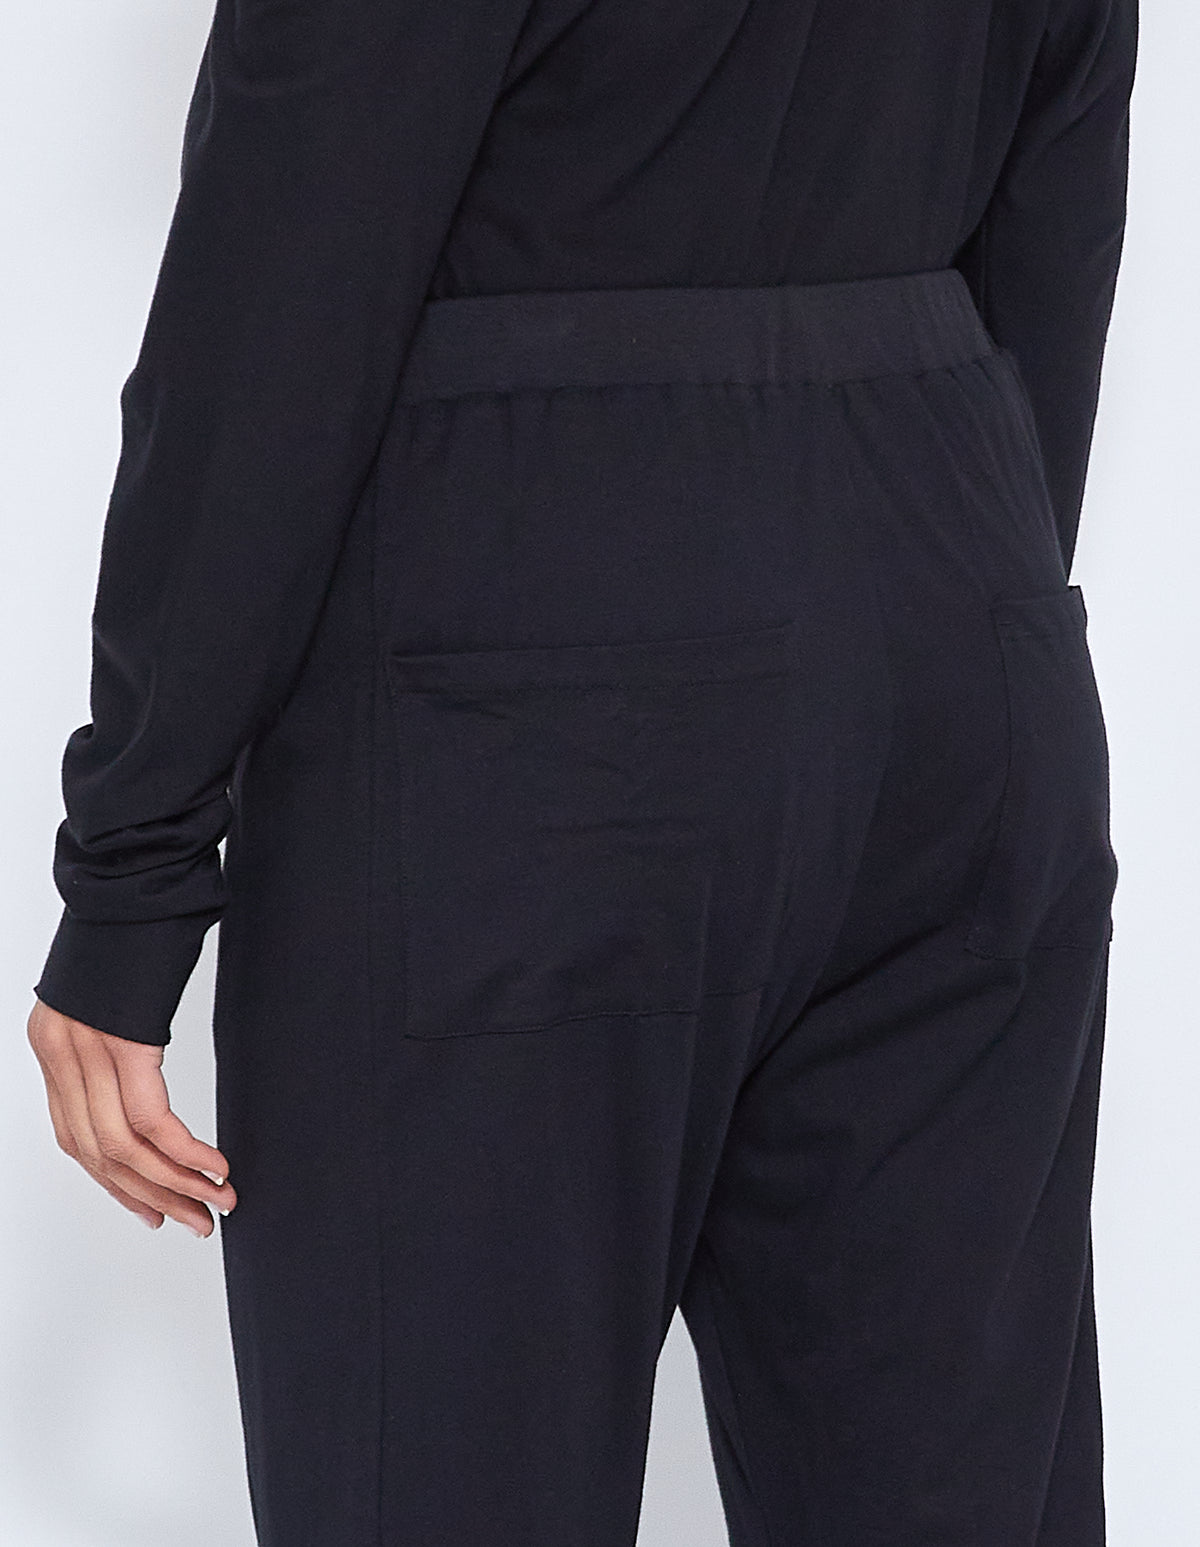 THREE LAKES JERSEY PANT